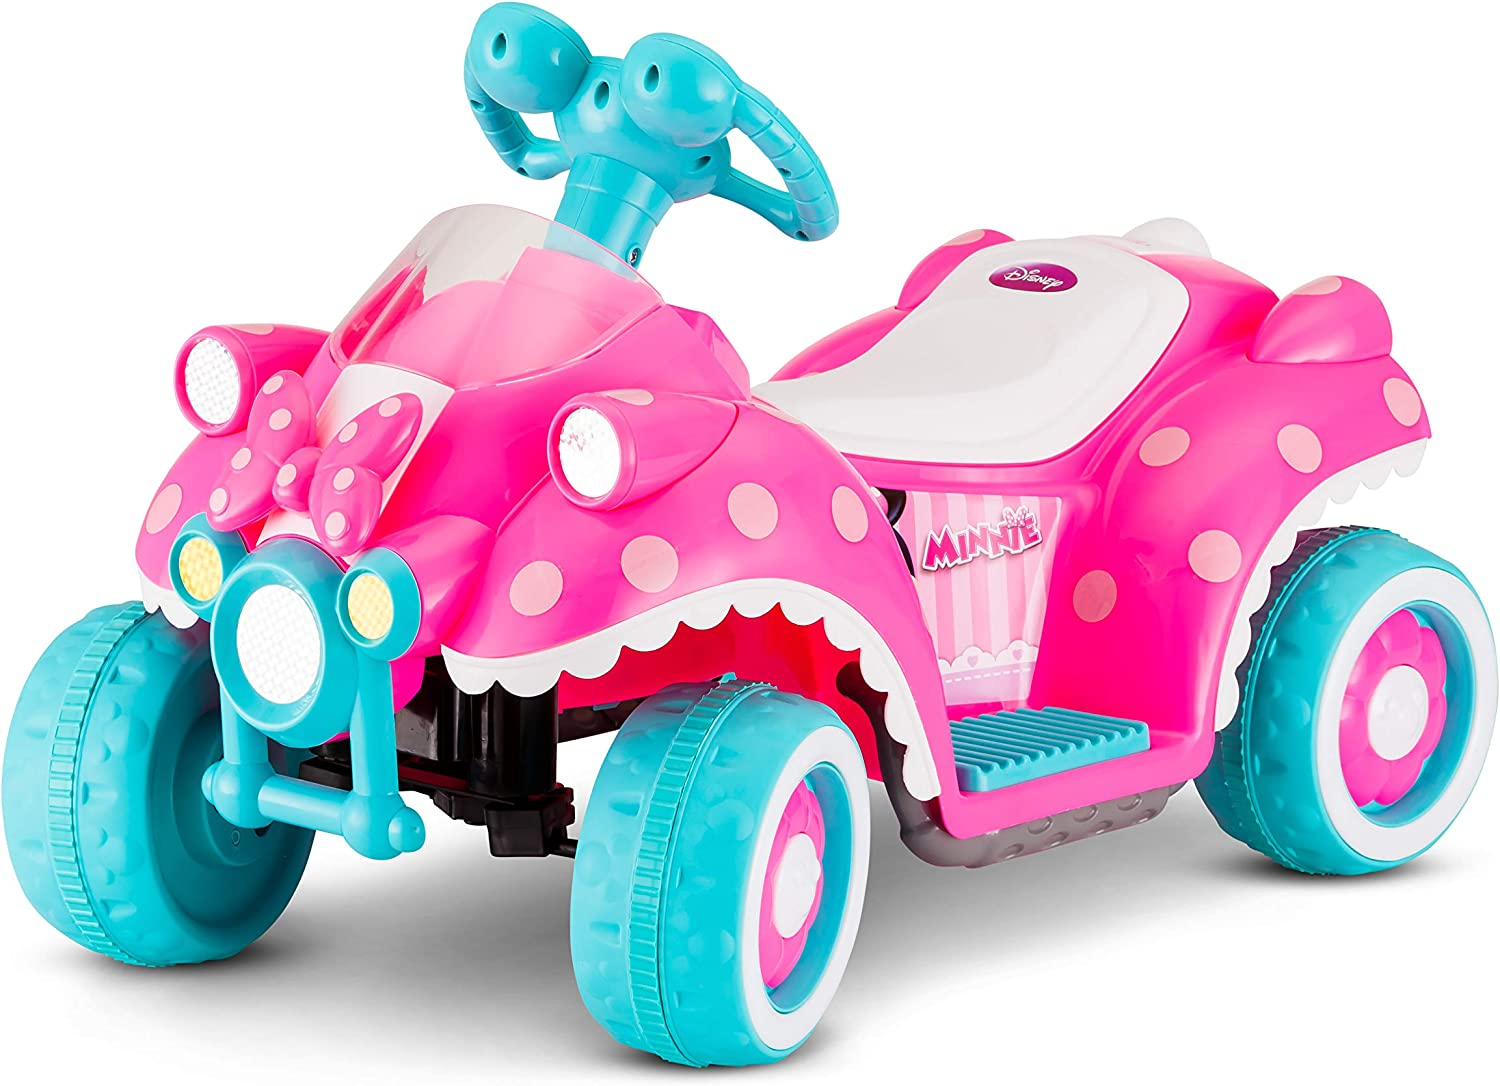 Toddler Minnie Mouse Ride On Toys by Kid Trax